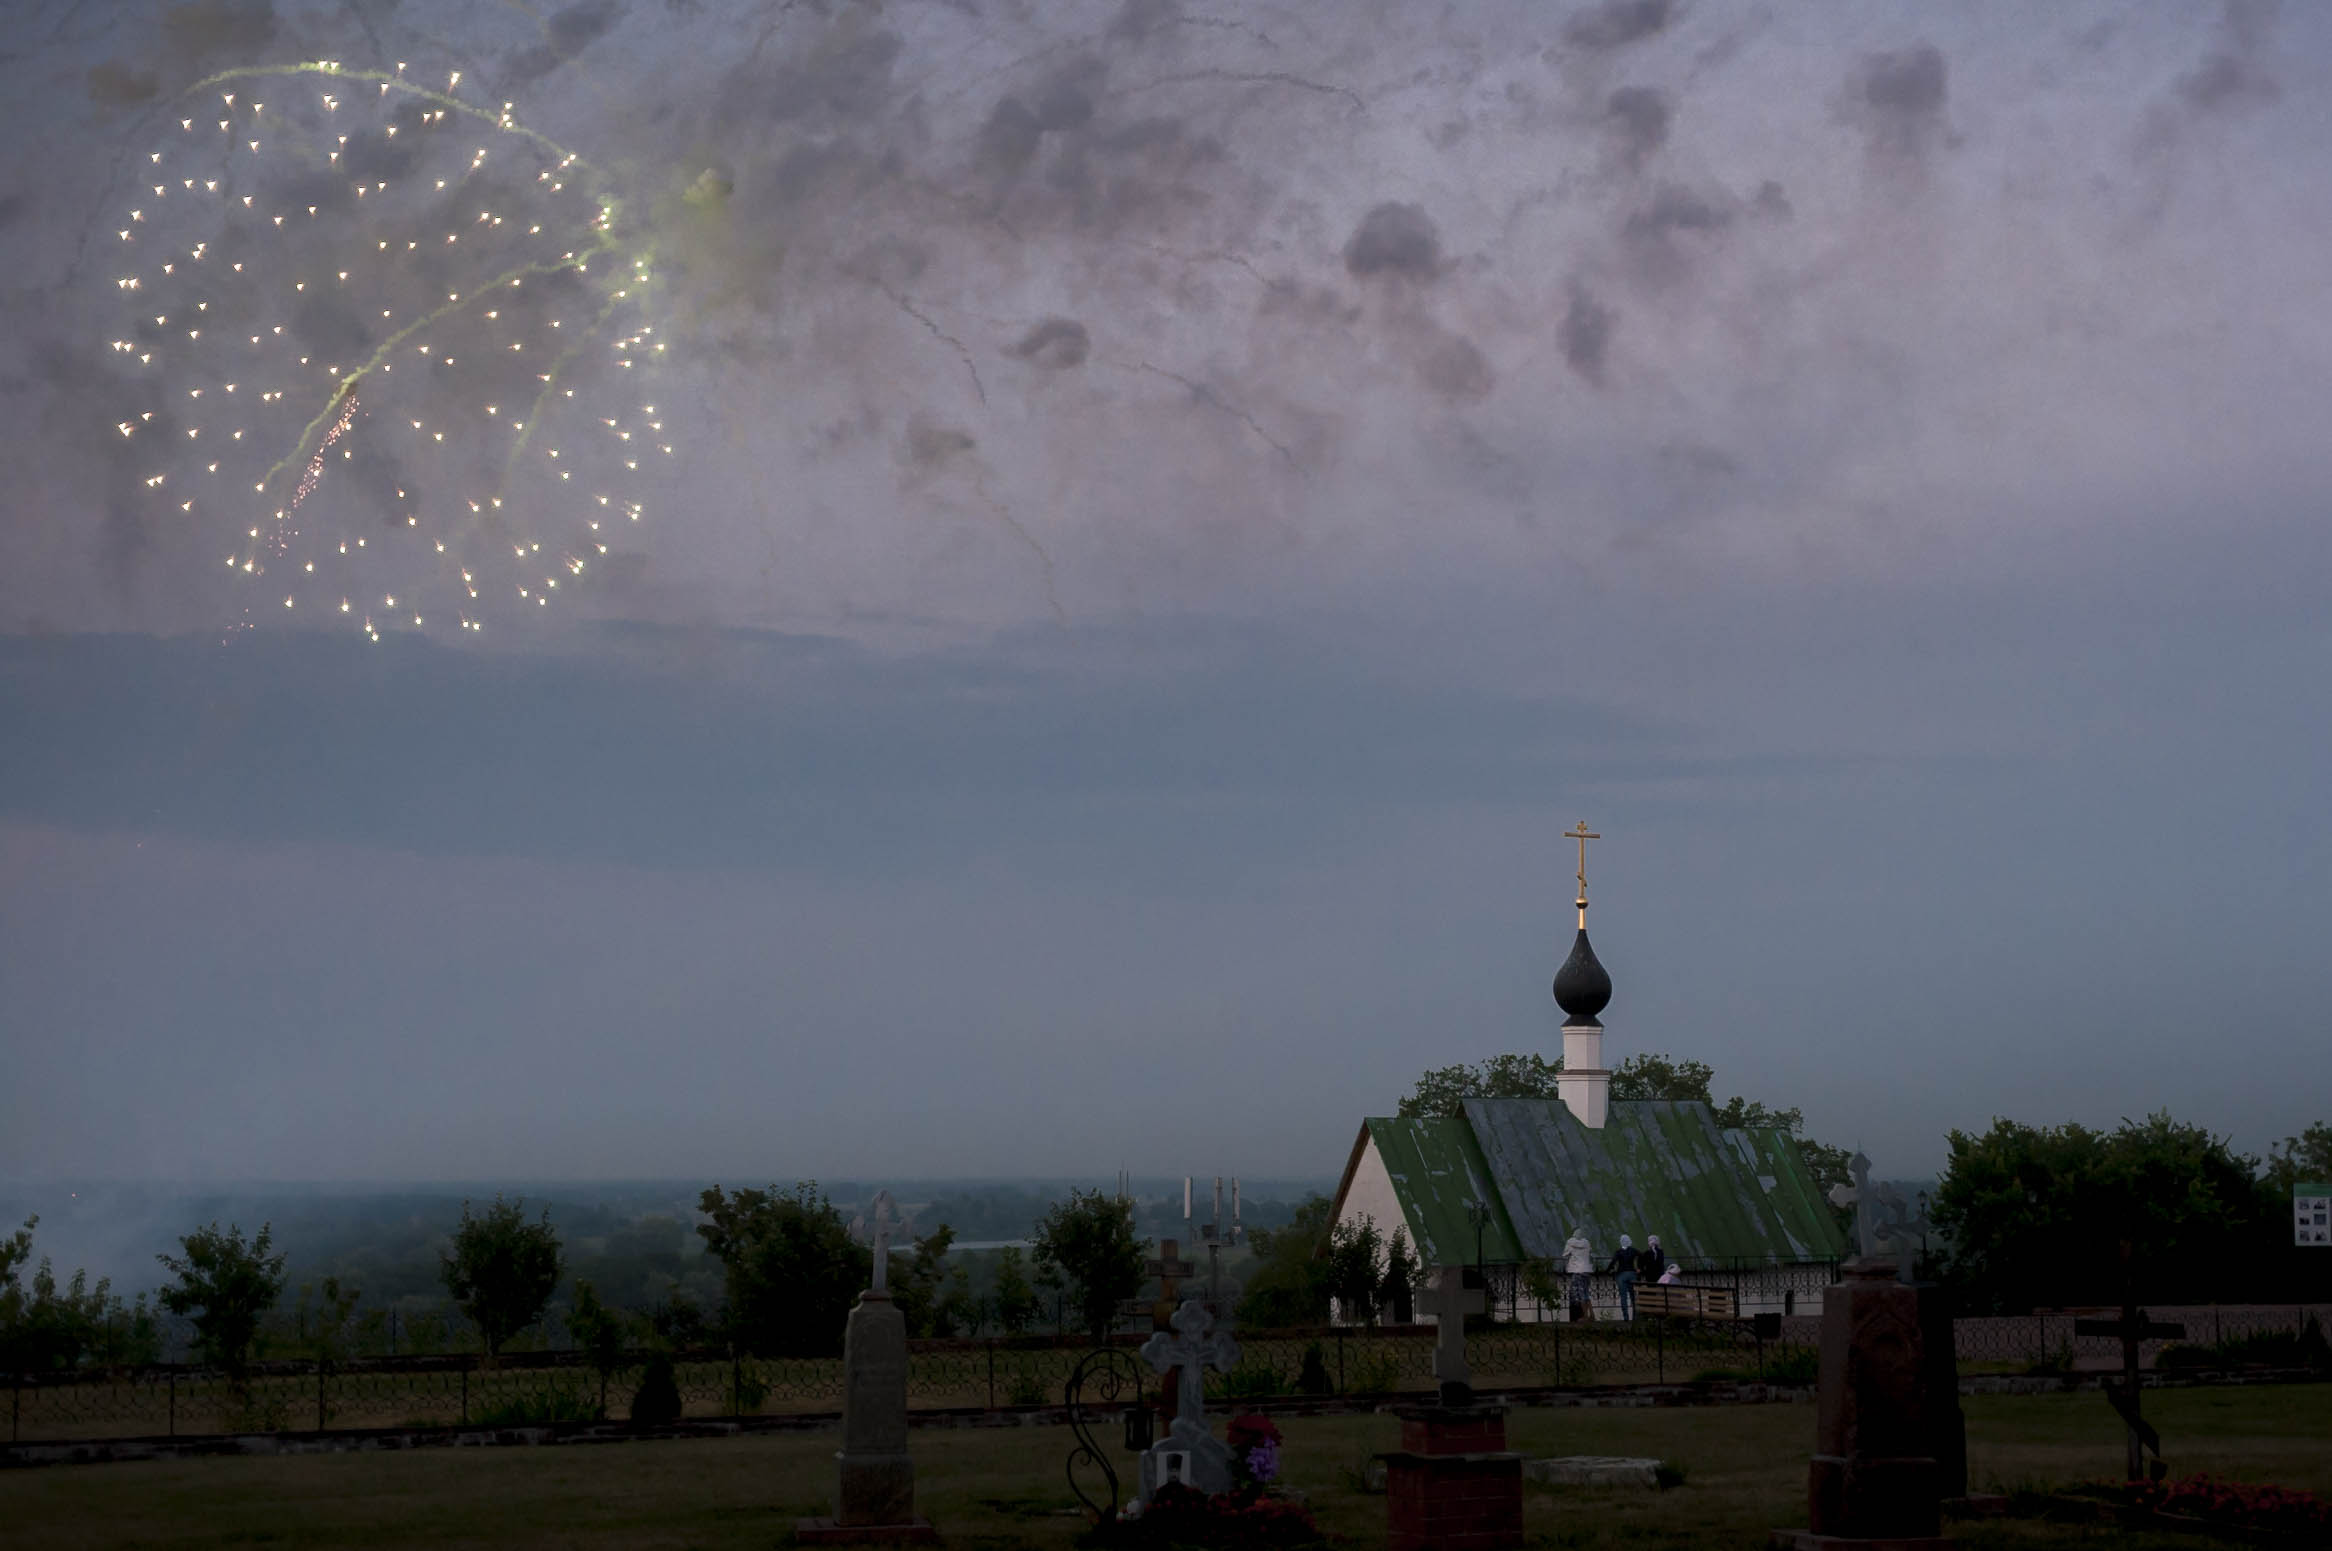 Fireworks over Murom, July 2013